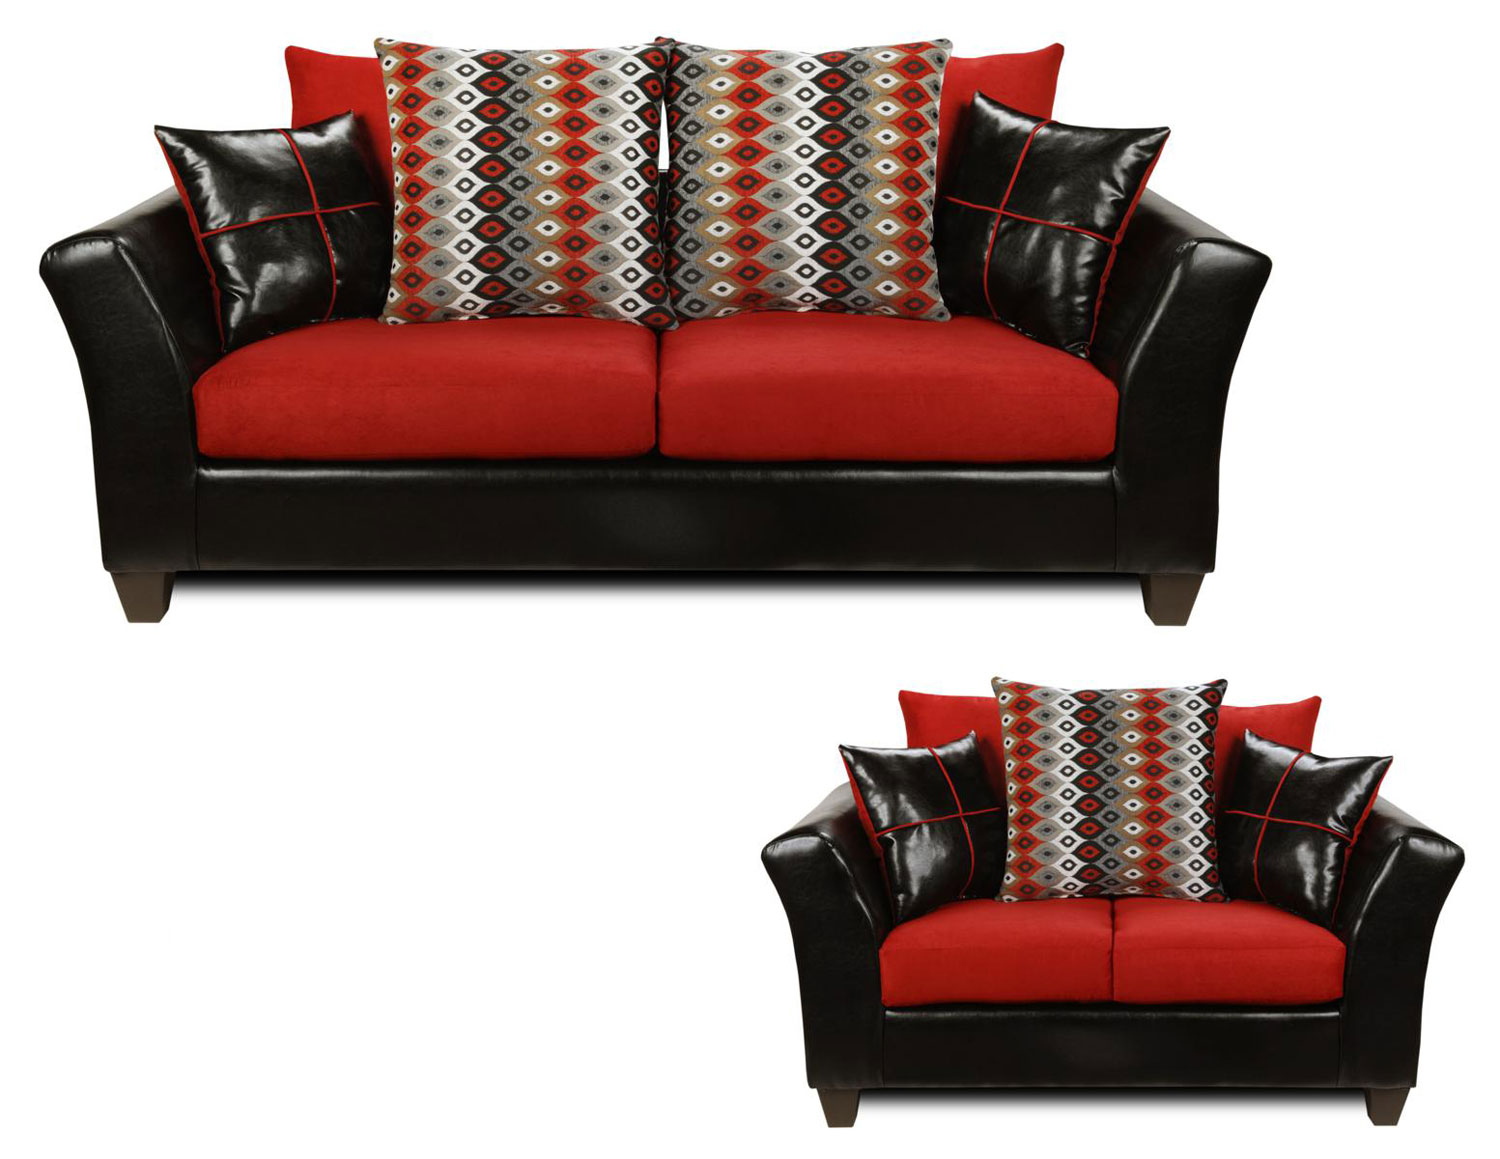 Cool Chelsea Home Cynthia Sofa Set Denver Black Victory Cardinal Download Free Architecture Designs Rallybritishbridgeorg